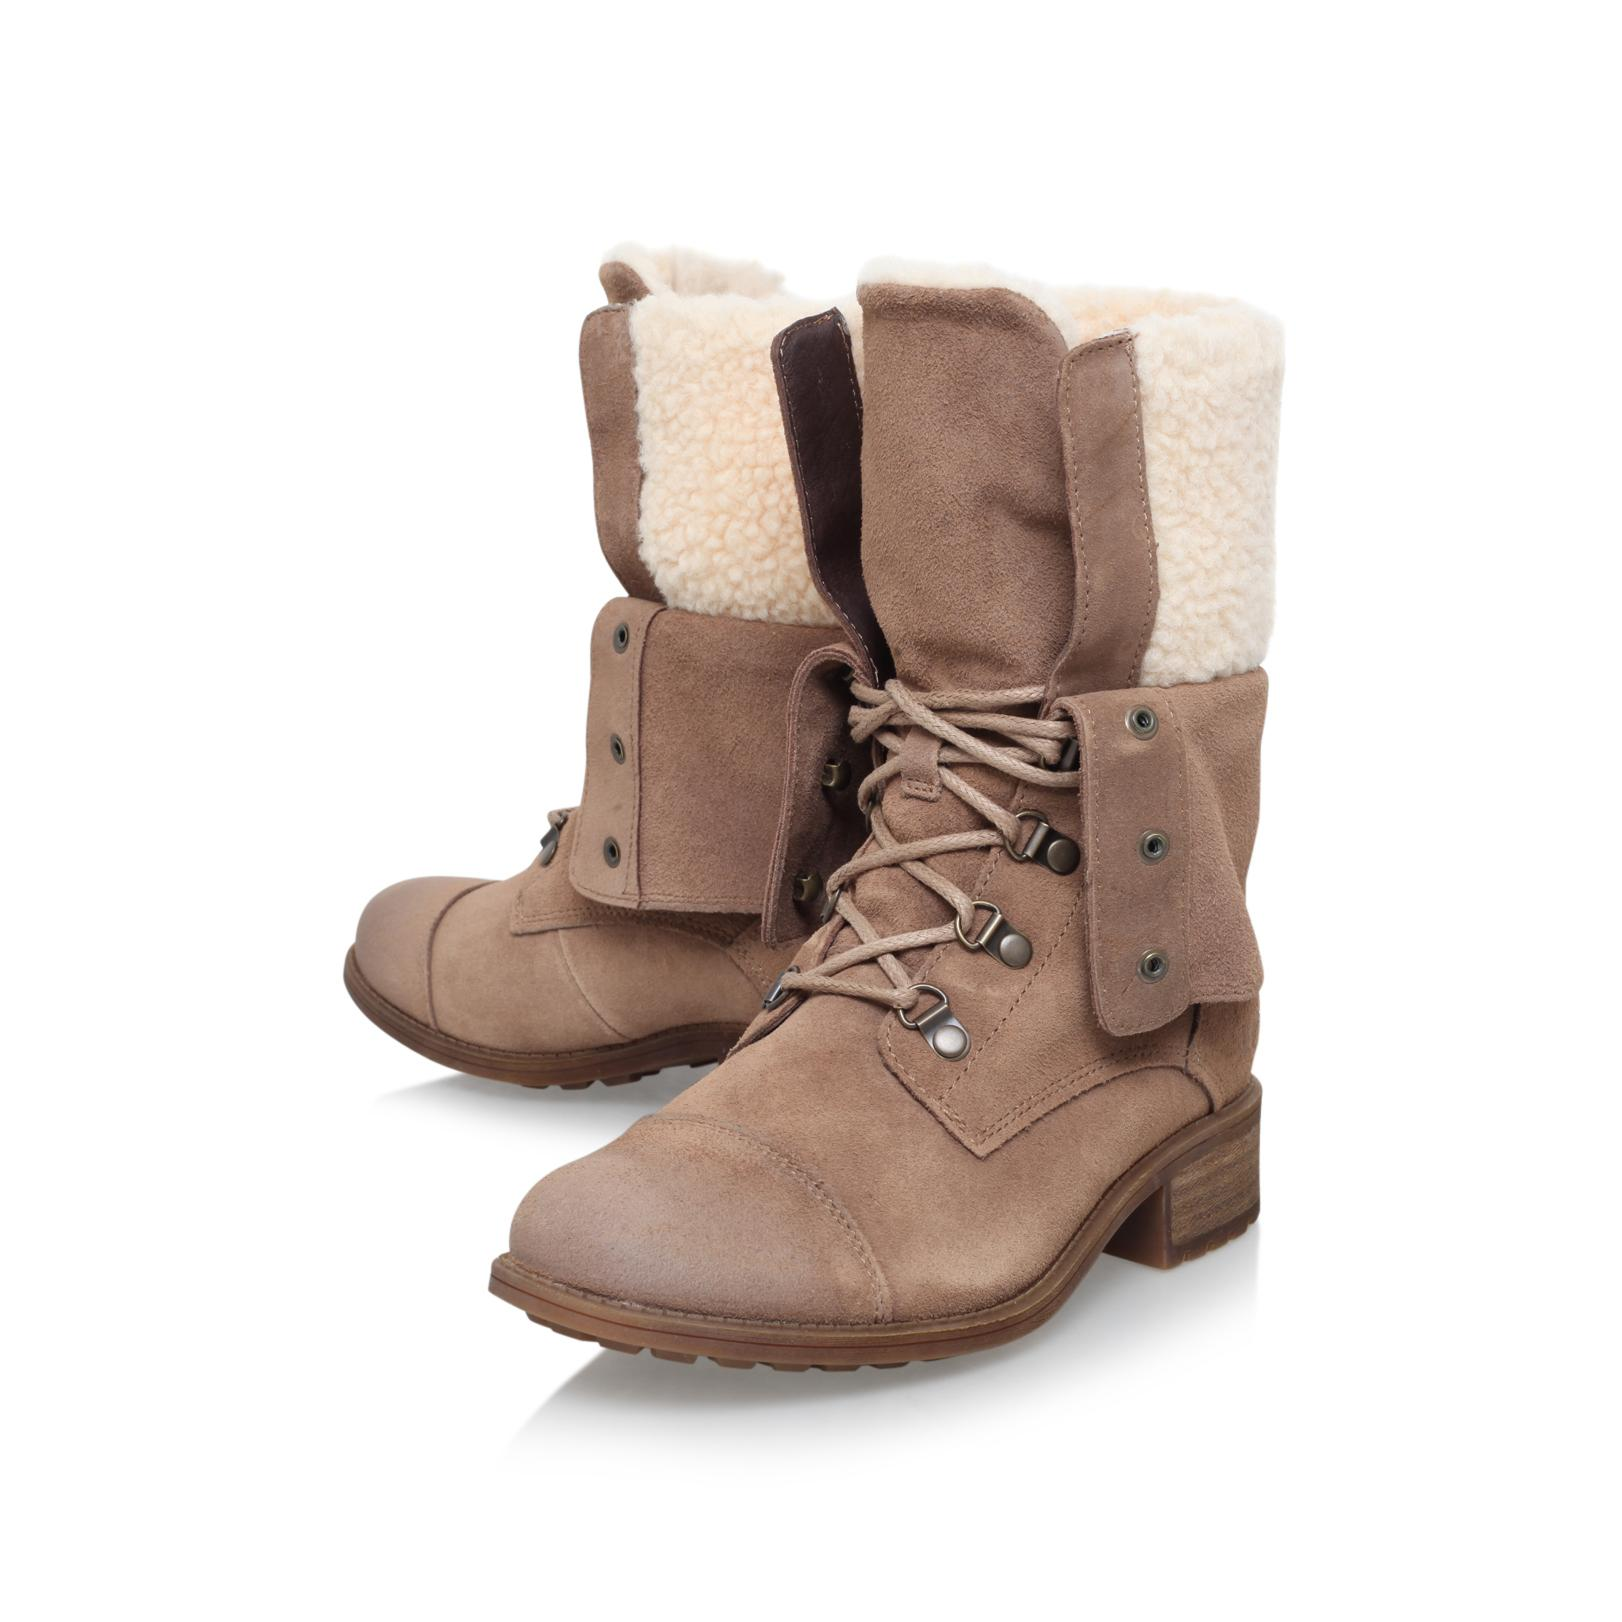 c9790aee9d5 Ugg Gradin Flat Calf Boots in Brown - Lyst